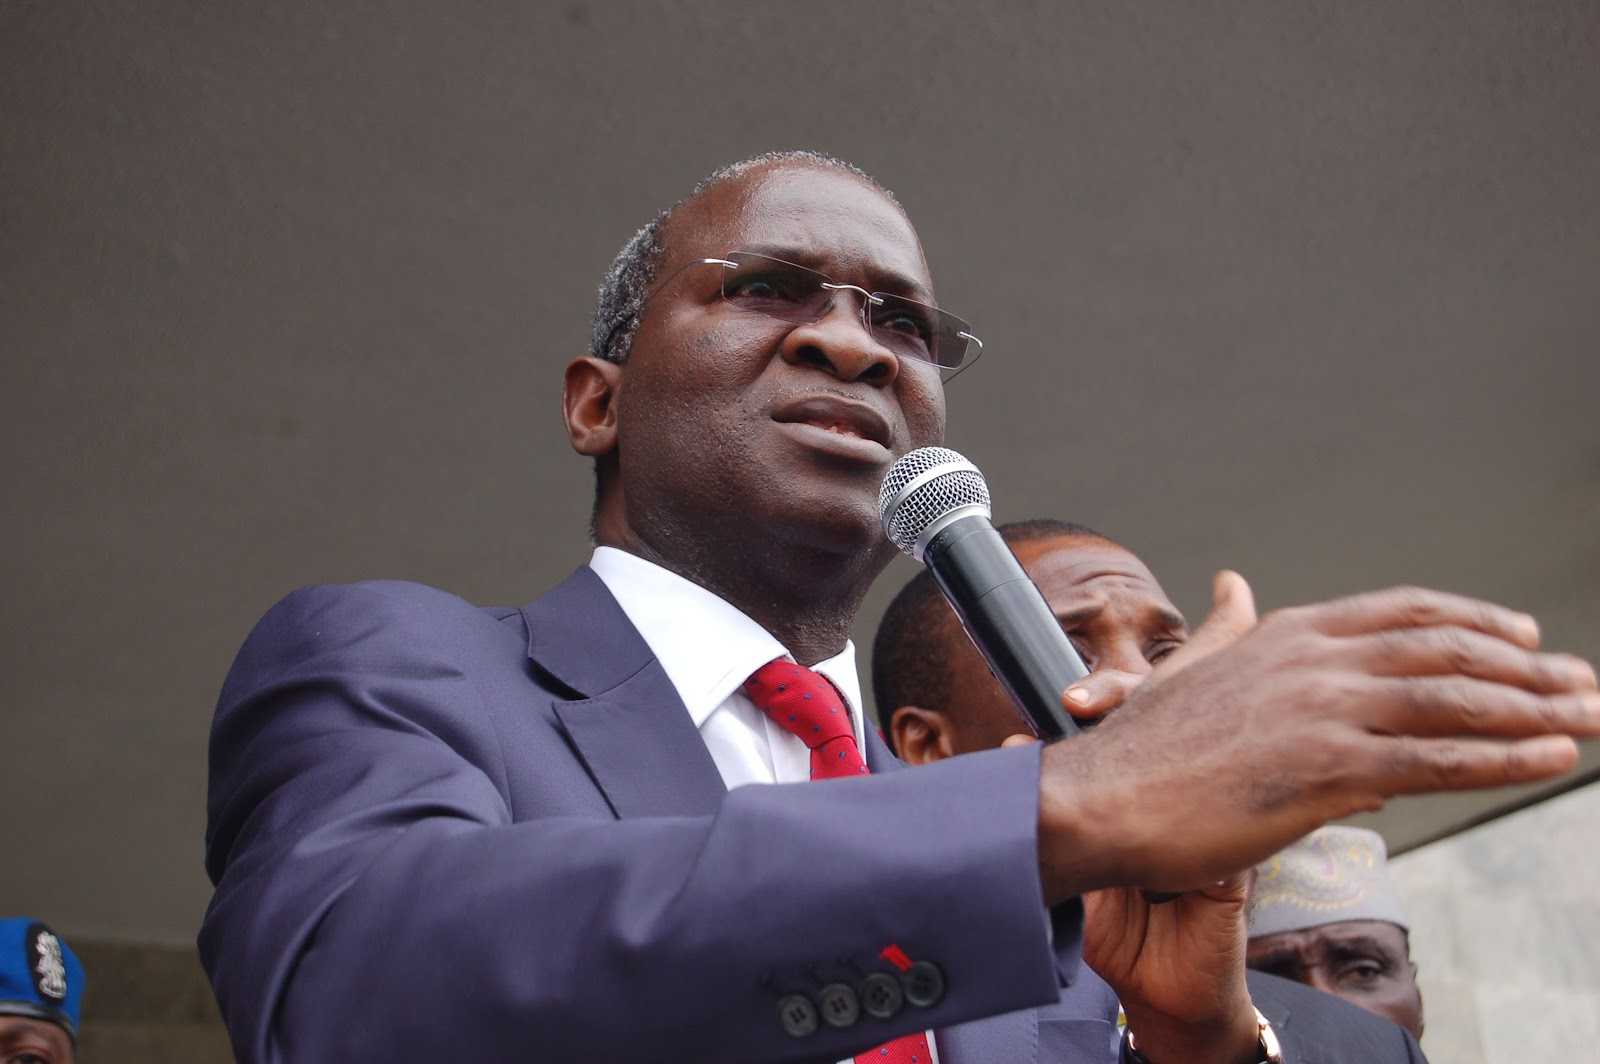 Fashola Says His Disagreement With Rep Members Is Healthy